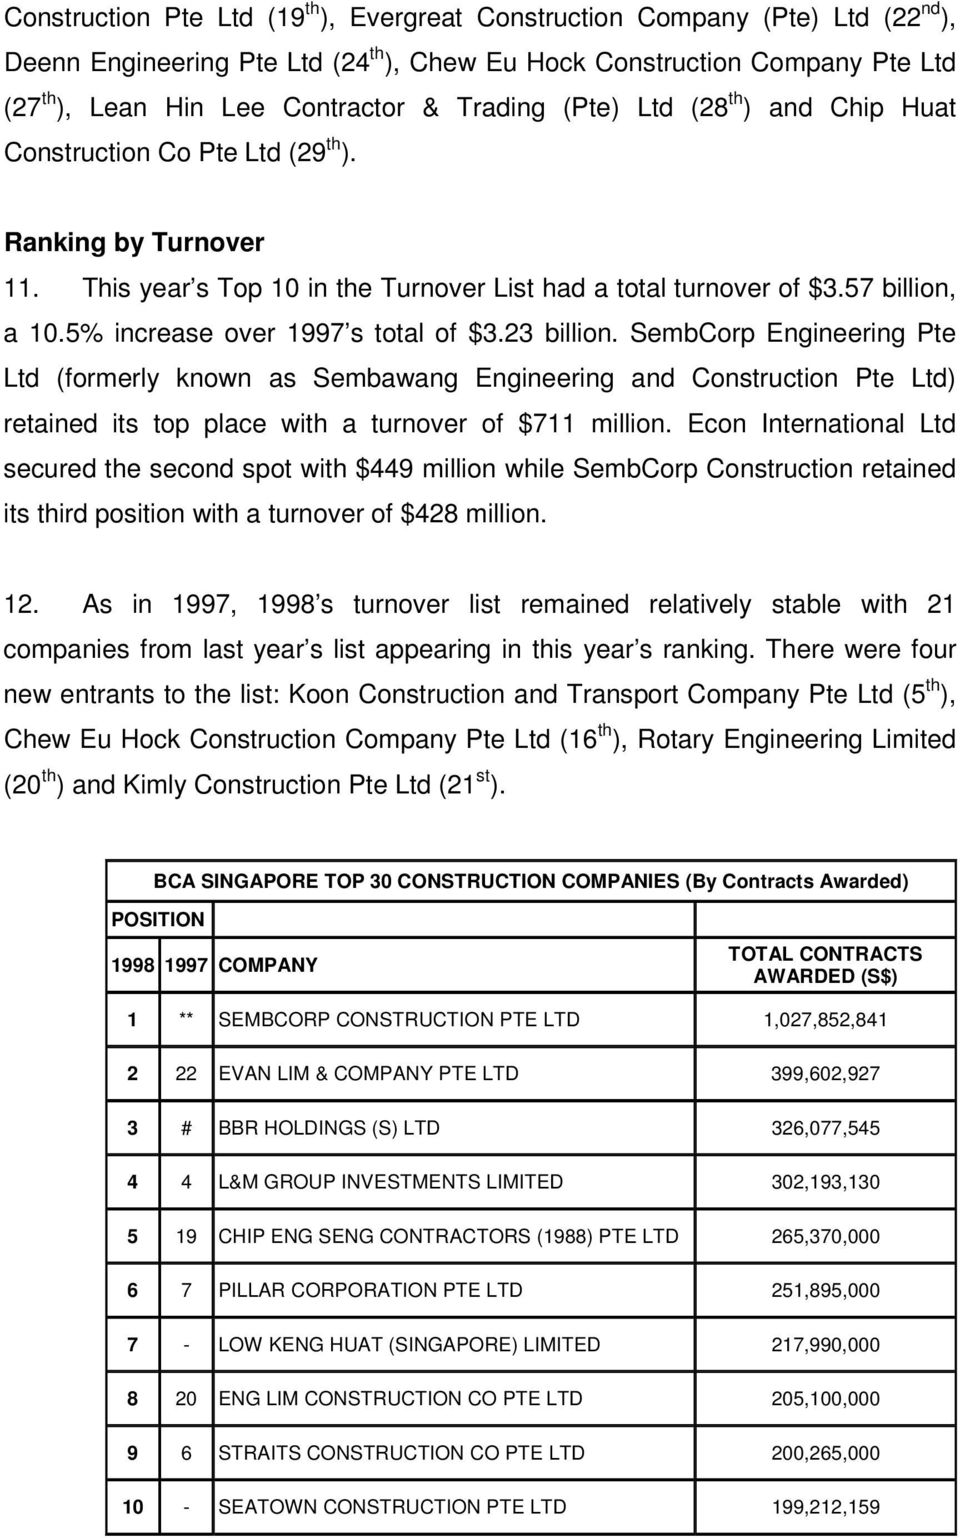 5% increase over 1997 s total of $3.23 billion. SembCorp Engineering Pte Ltd (formerly known as Sembawang Engineering and Construction Pte Ltd) retained its top place with a turnover of $711 million.